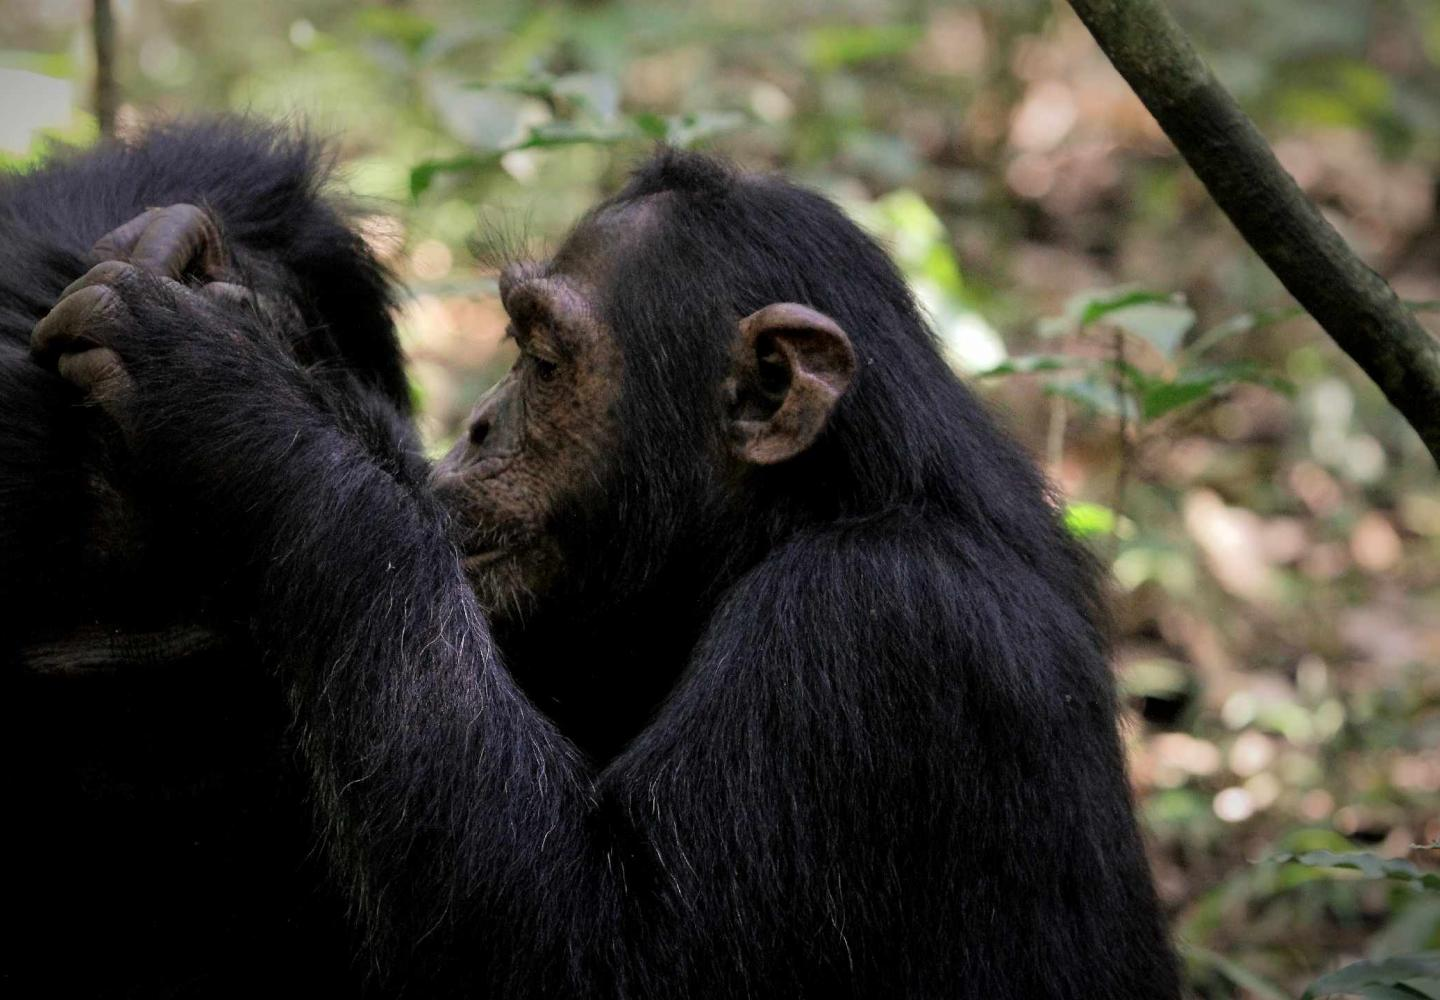 Juvenile chimpanzee grooming (Kibale Forest National Park)